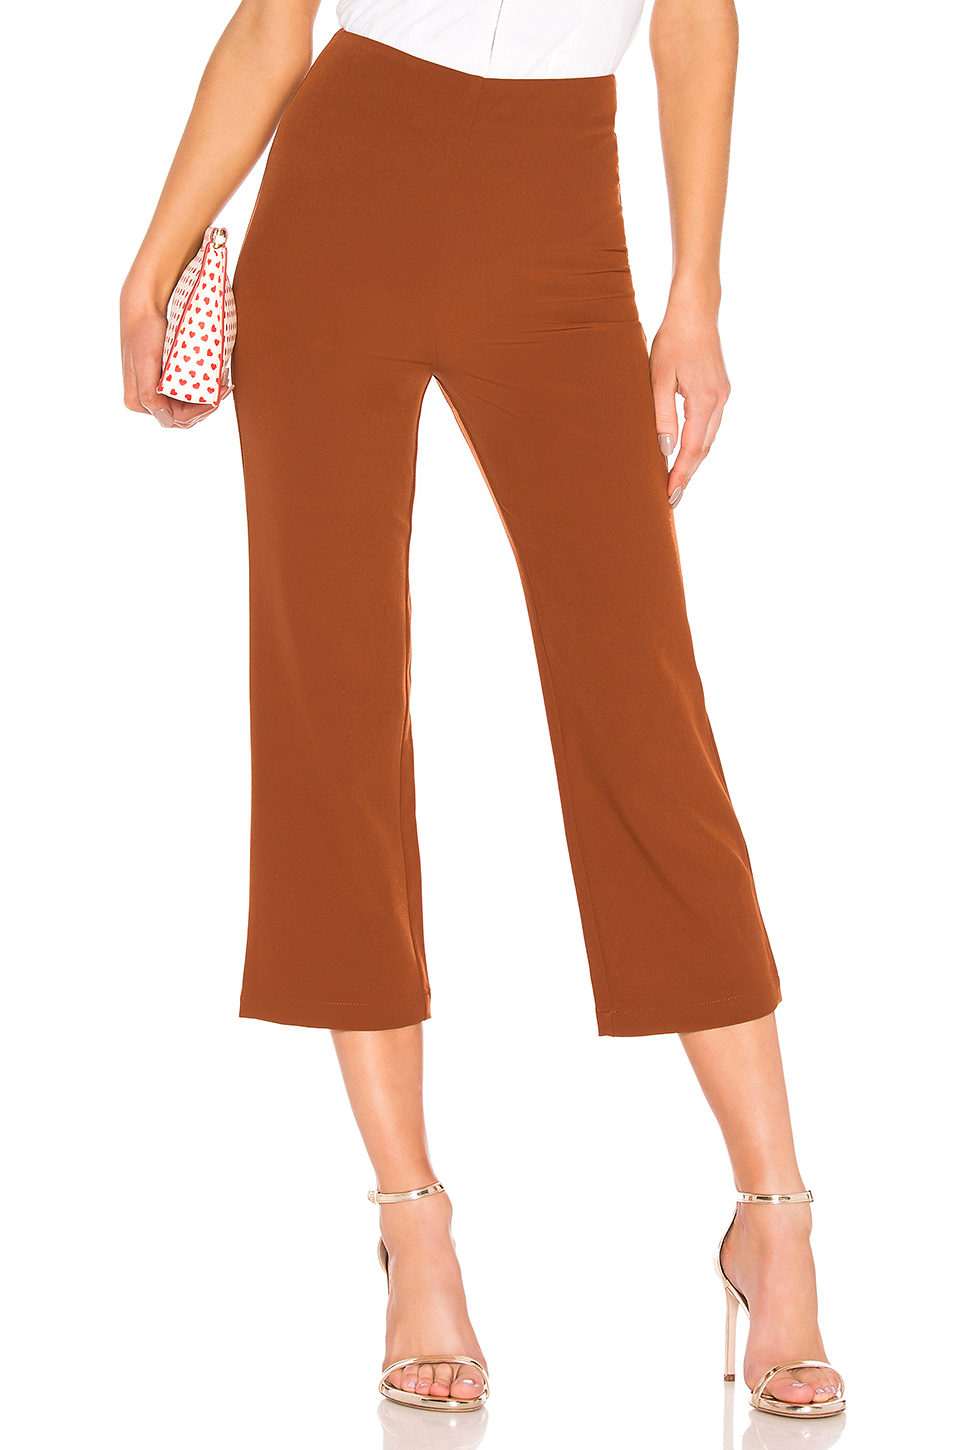 Brown Cropped Pant, $30, Revolve